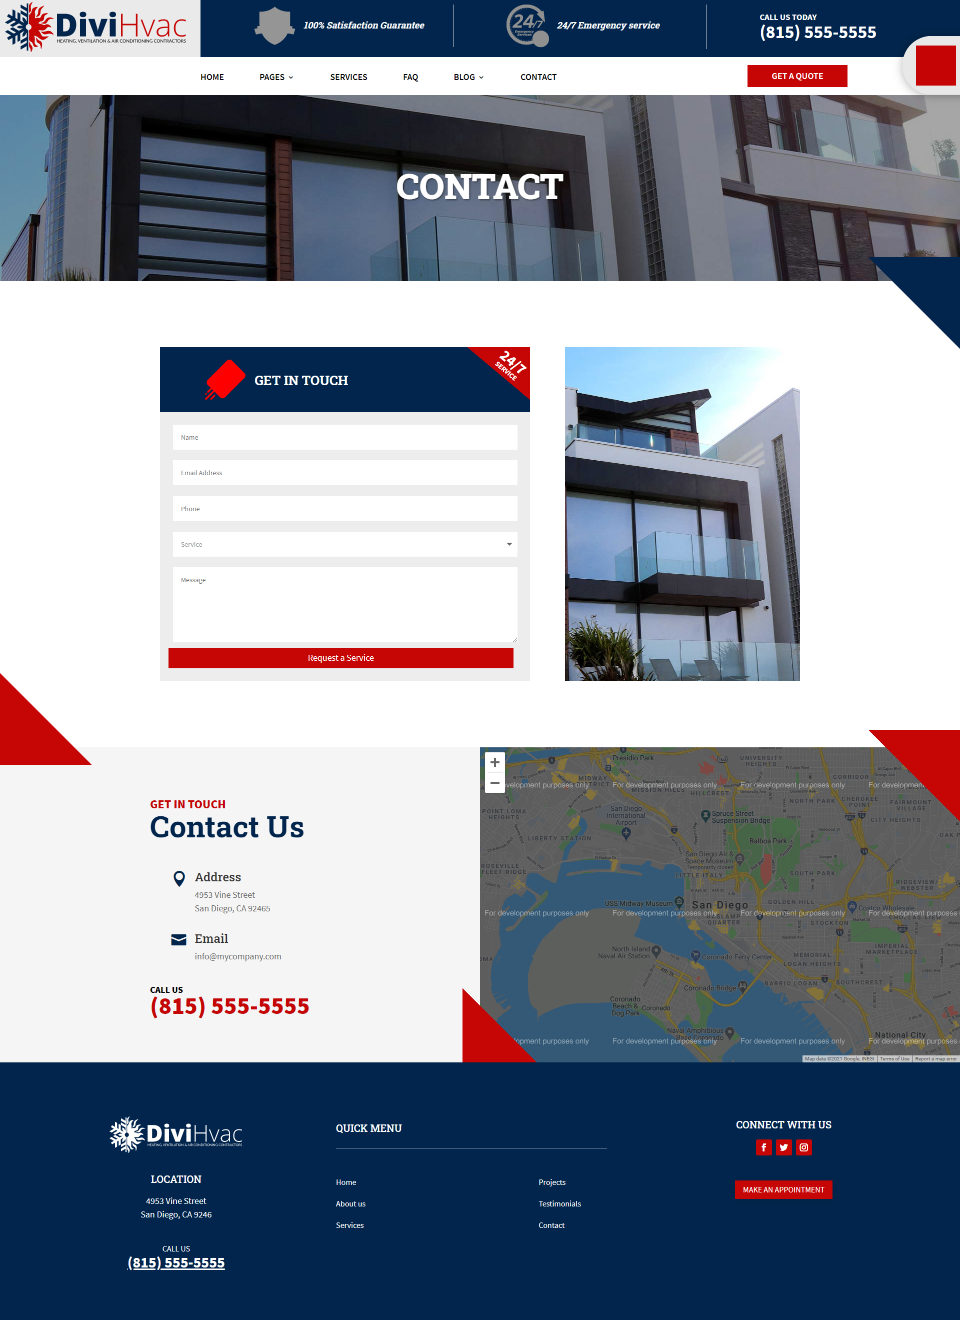 DiviHvac Child Theme Contact Page